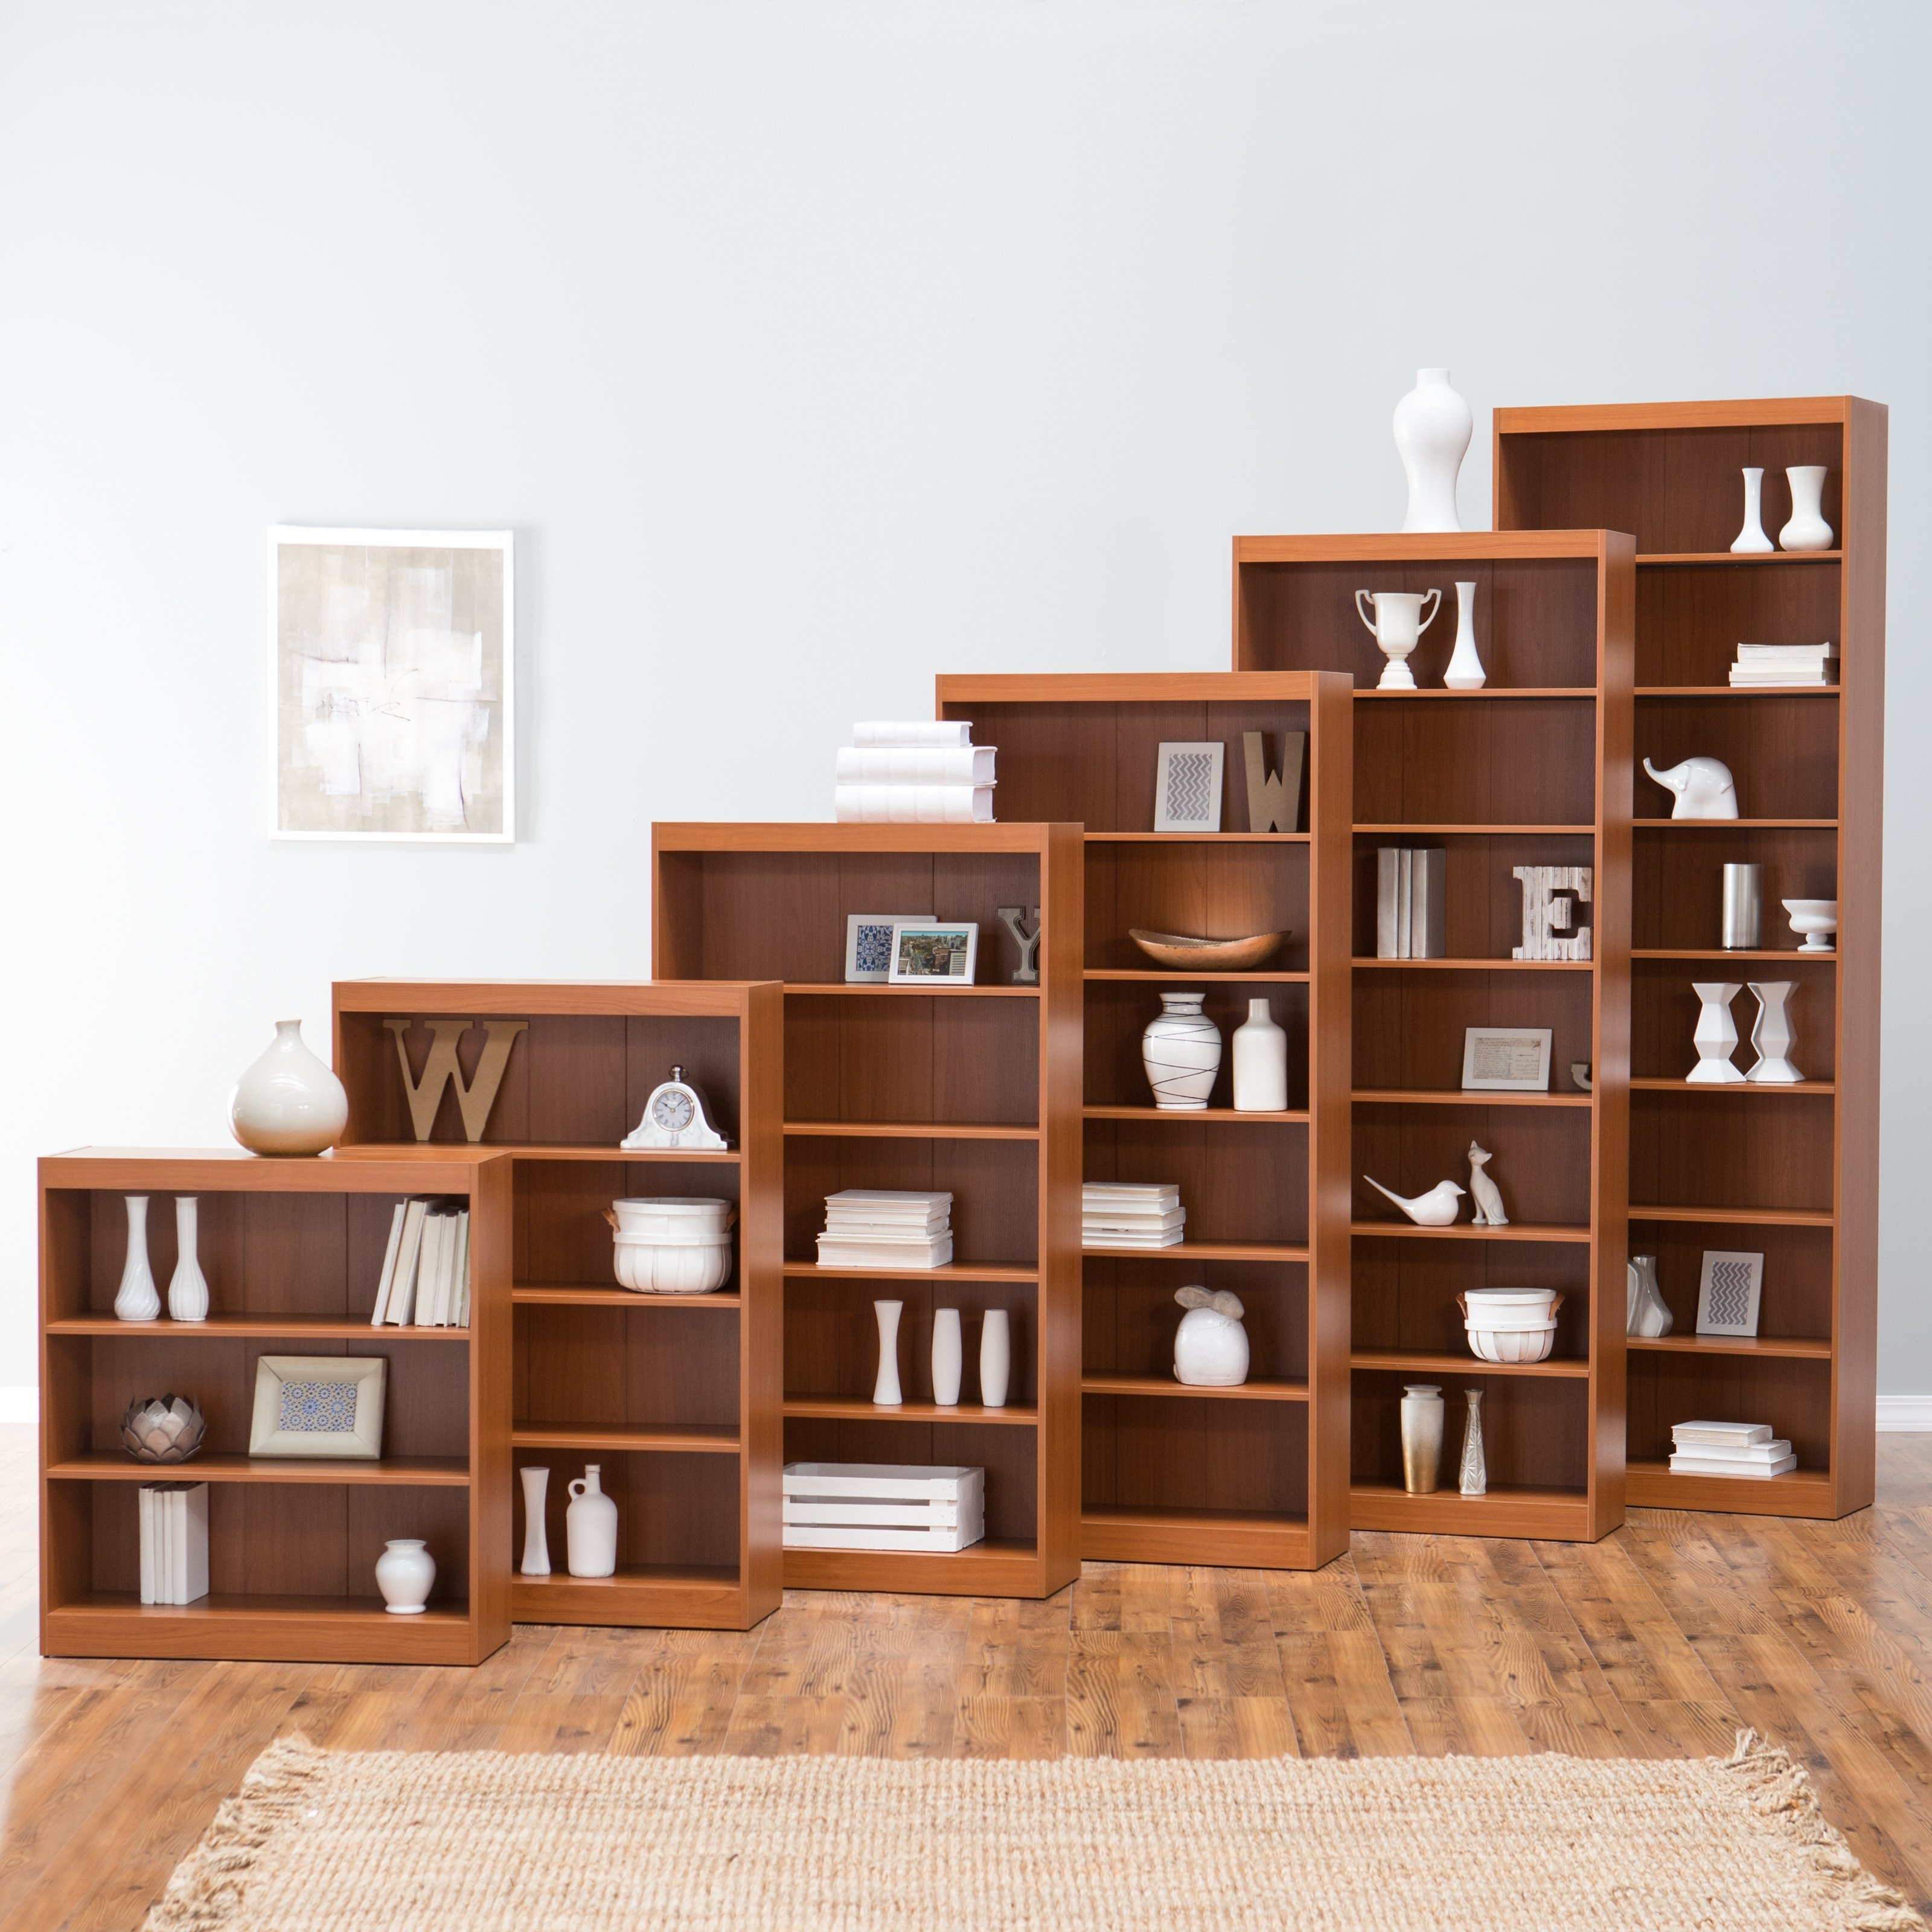 Remmington Heavy Duty Bookcase Oak Bookcases At Hayneedle With Oak Bookcases (View 8 of 15)